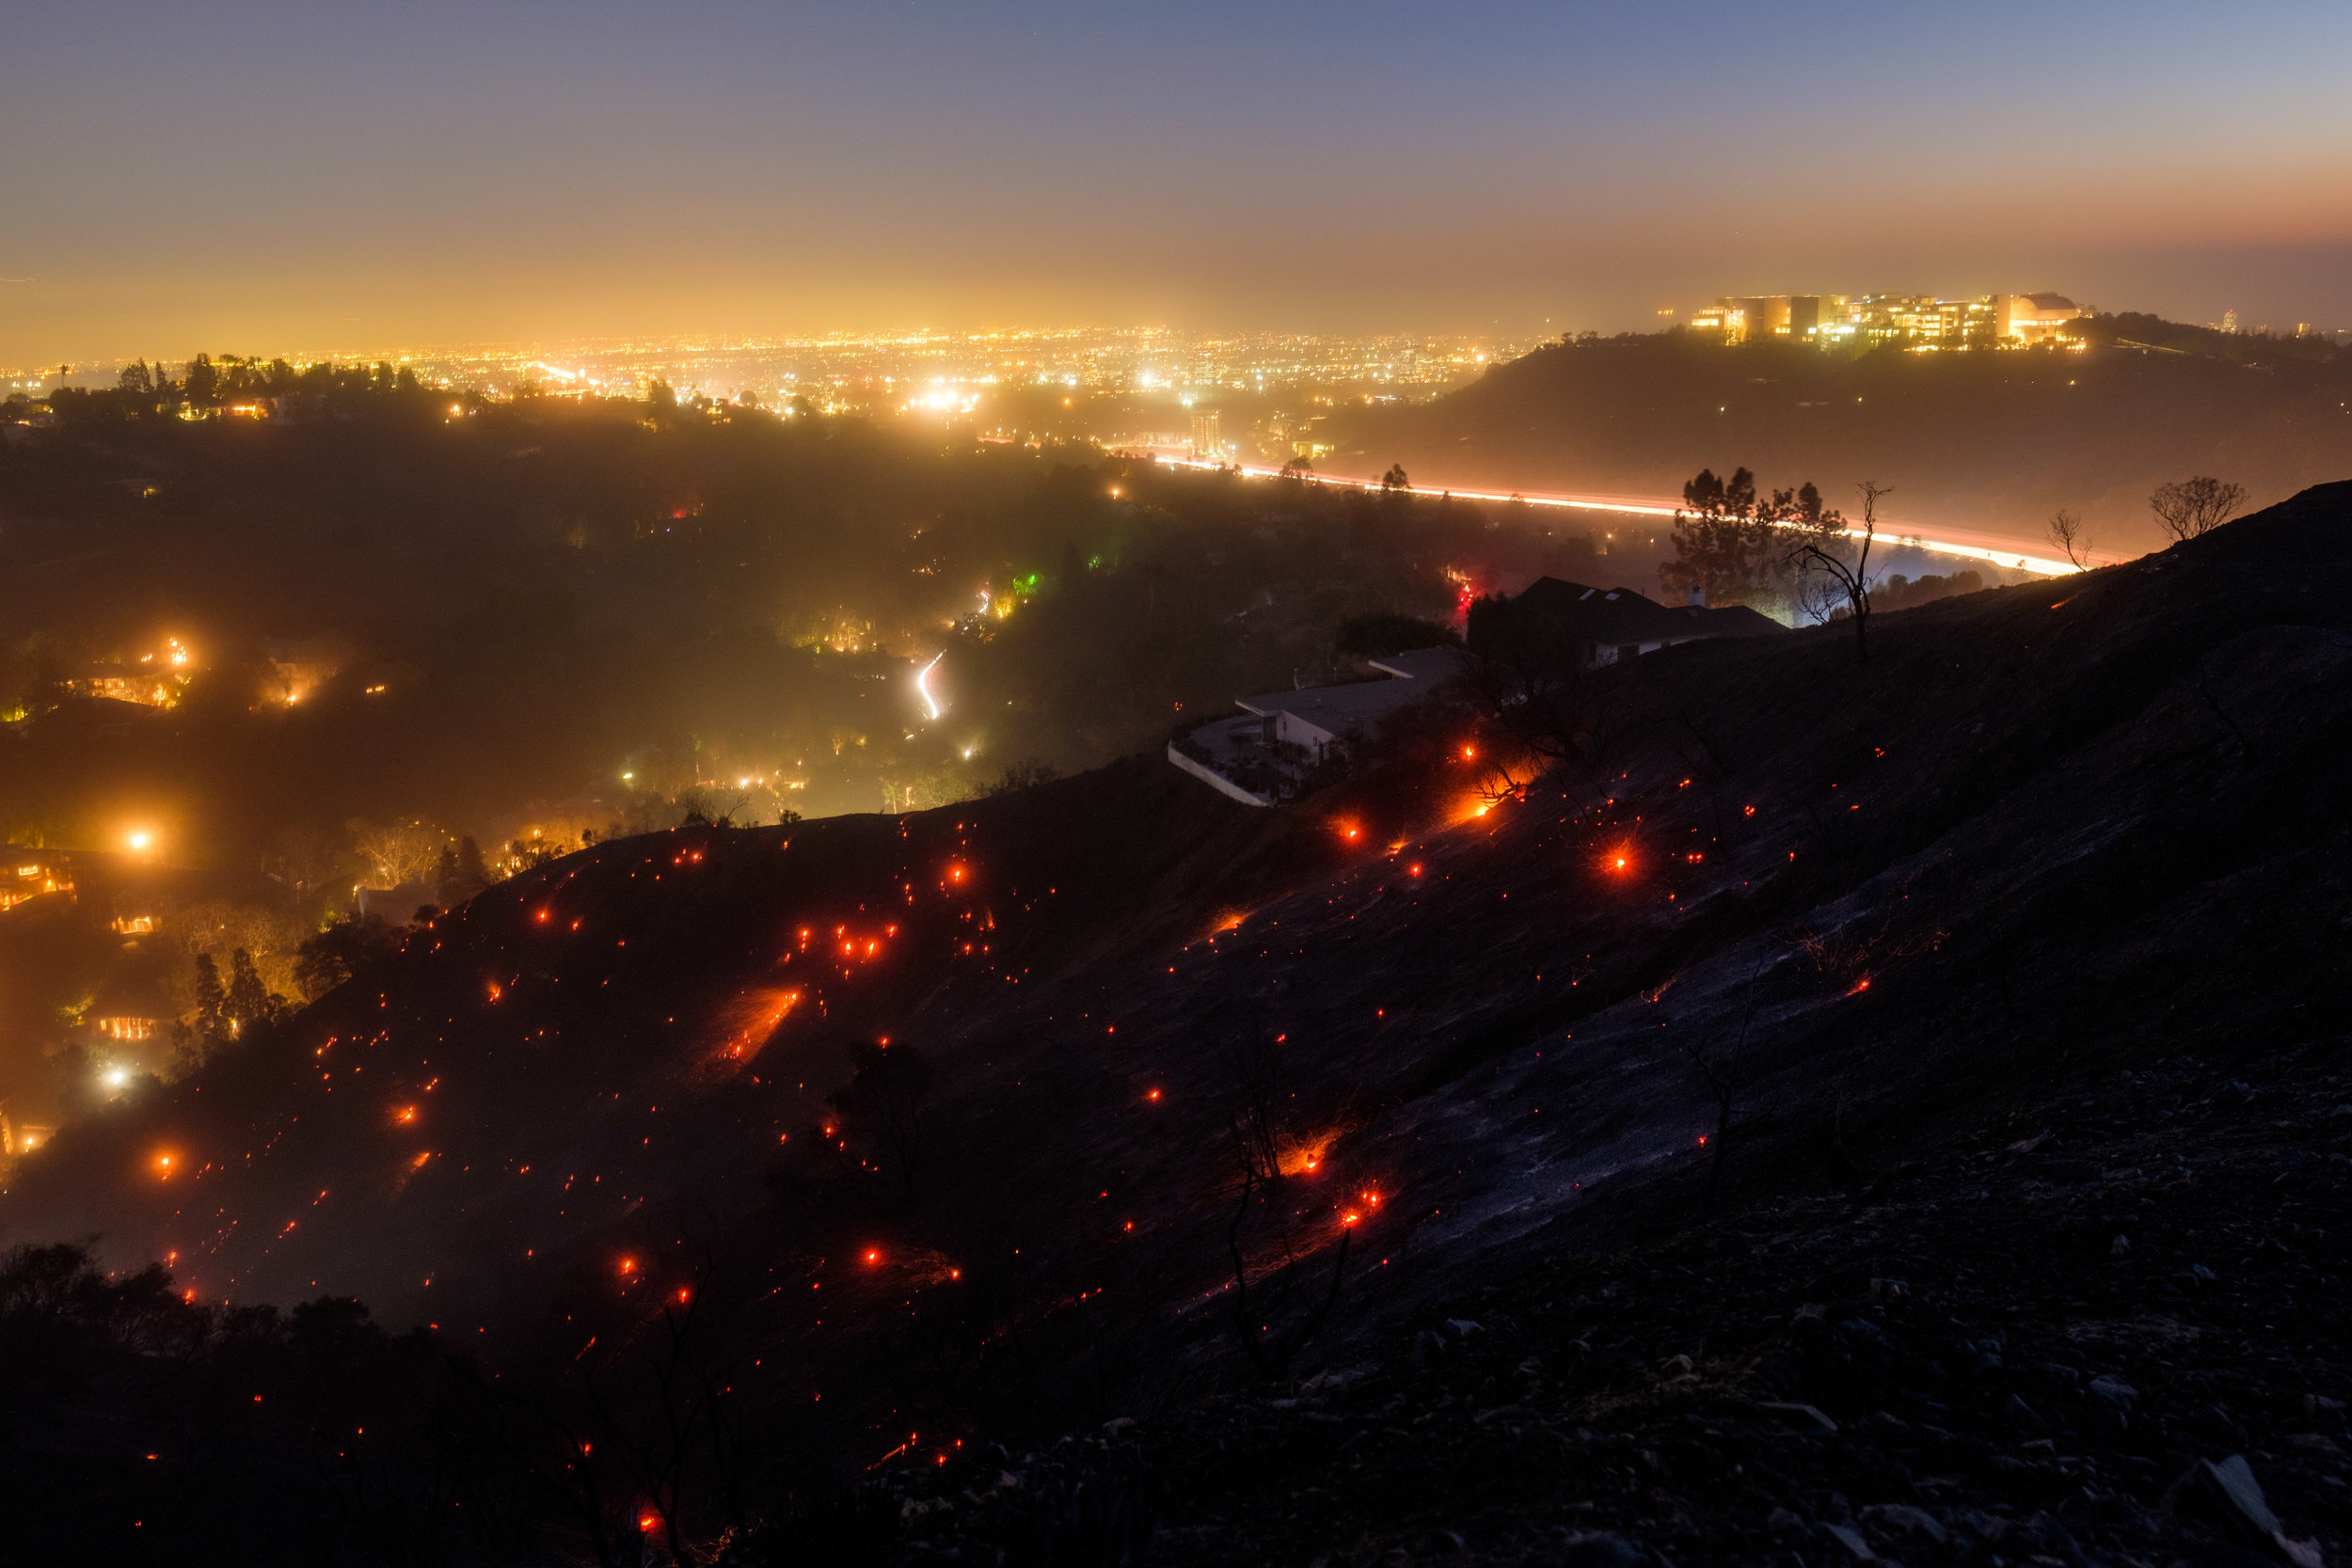 After sundown, the winds start to pick up on the Getty View Trail and embers from the Skirball Fire that burned down 475 acres of land at Sepulveda Pass. The fire started in the early morning and began to glow again in Santa Monica, Calif. On Dec. 6, 2017. (Photo by Jayrol San Jose)